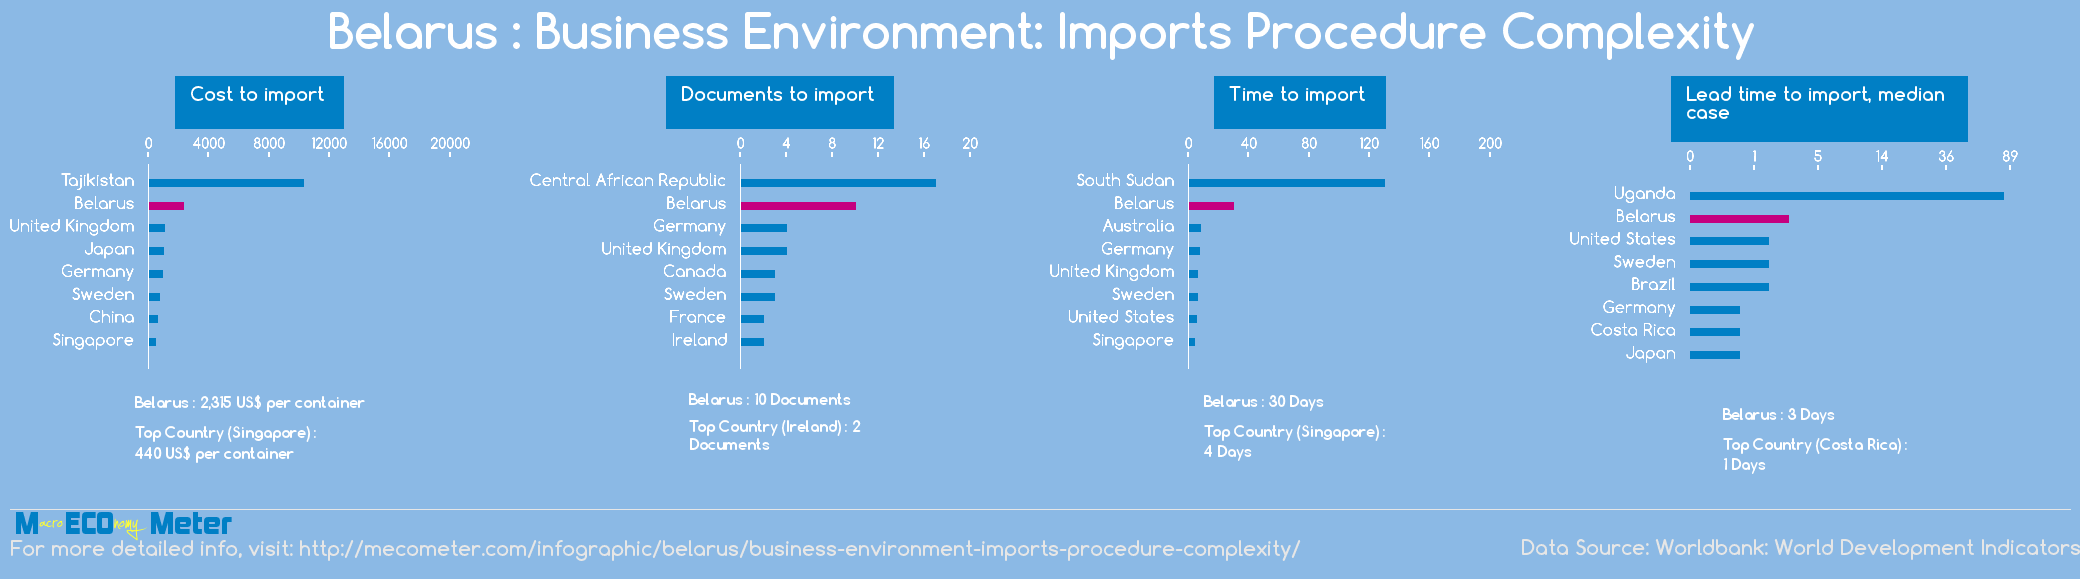 Belarus : Business Environment: Imports Procedure Complexity